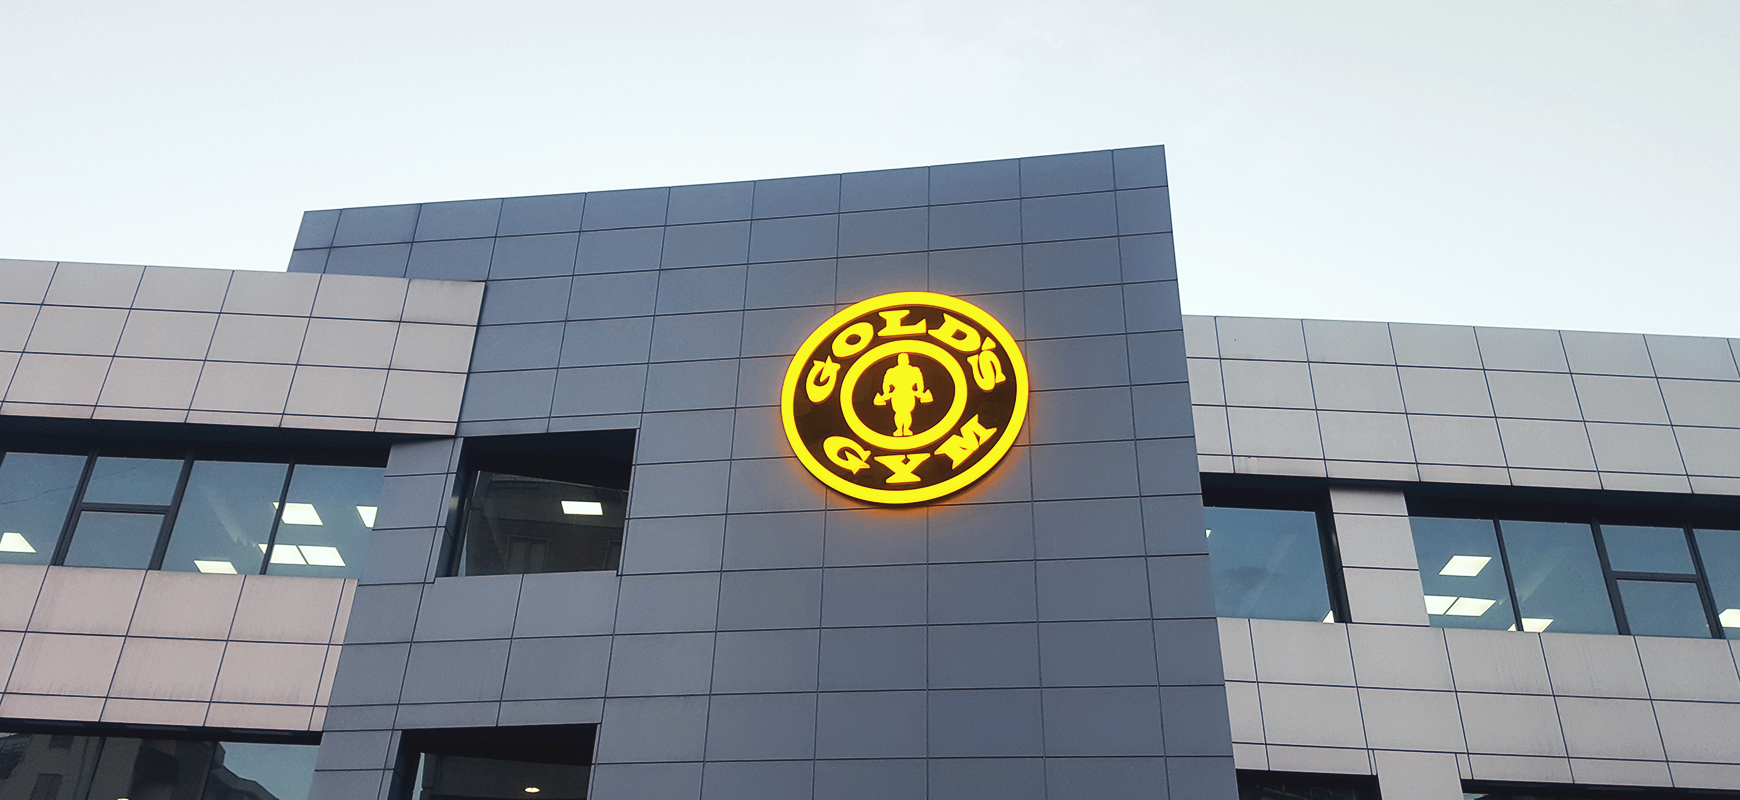 Gold's Gym light box logo sign in a round shape made of aluminum and acrylic